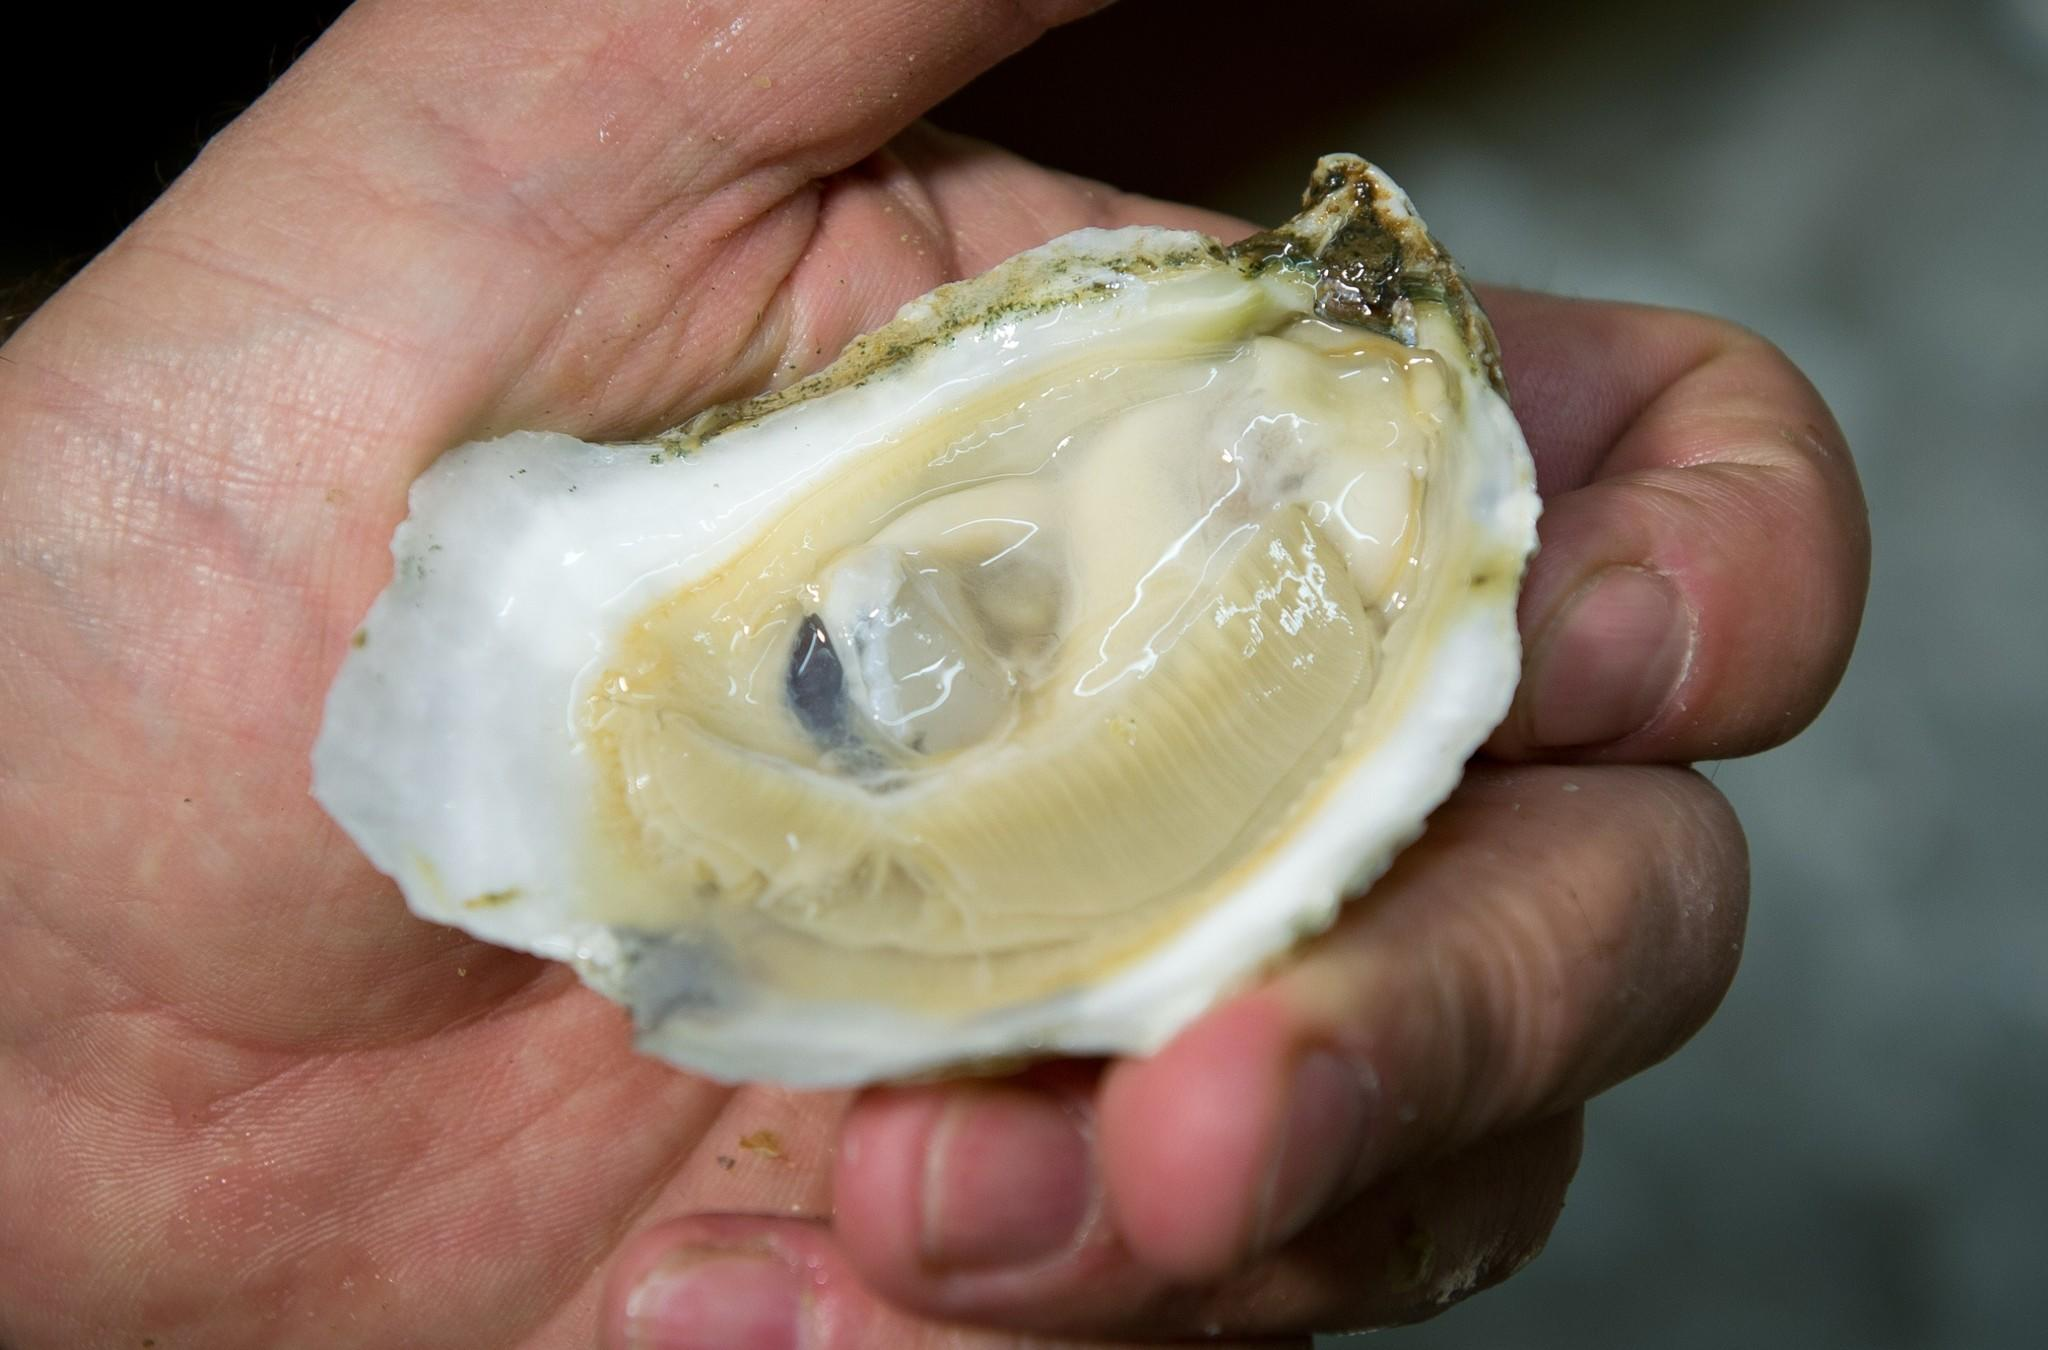 An employee of the Hollywood Oyster Company shows a fresh oyster.